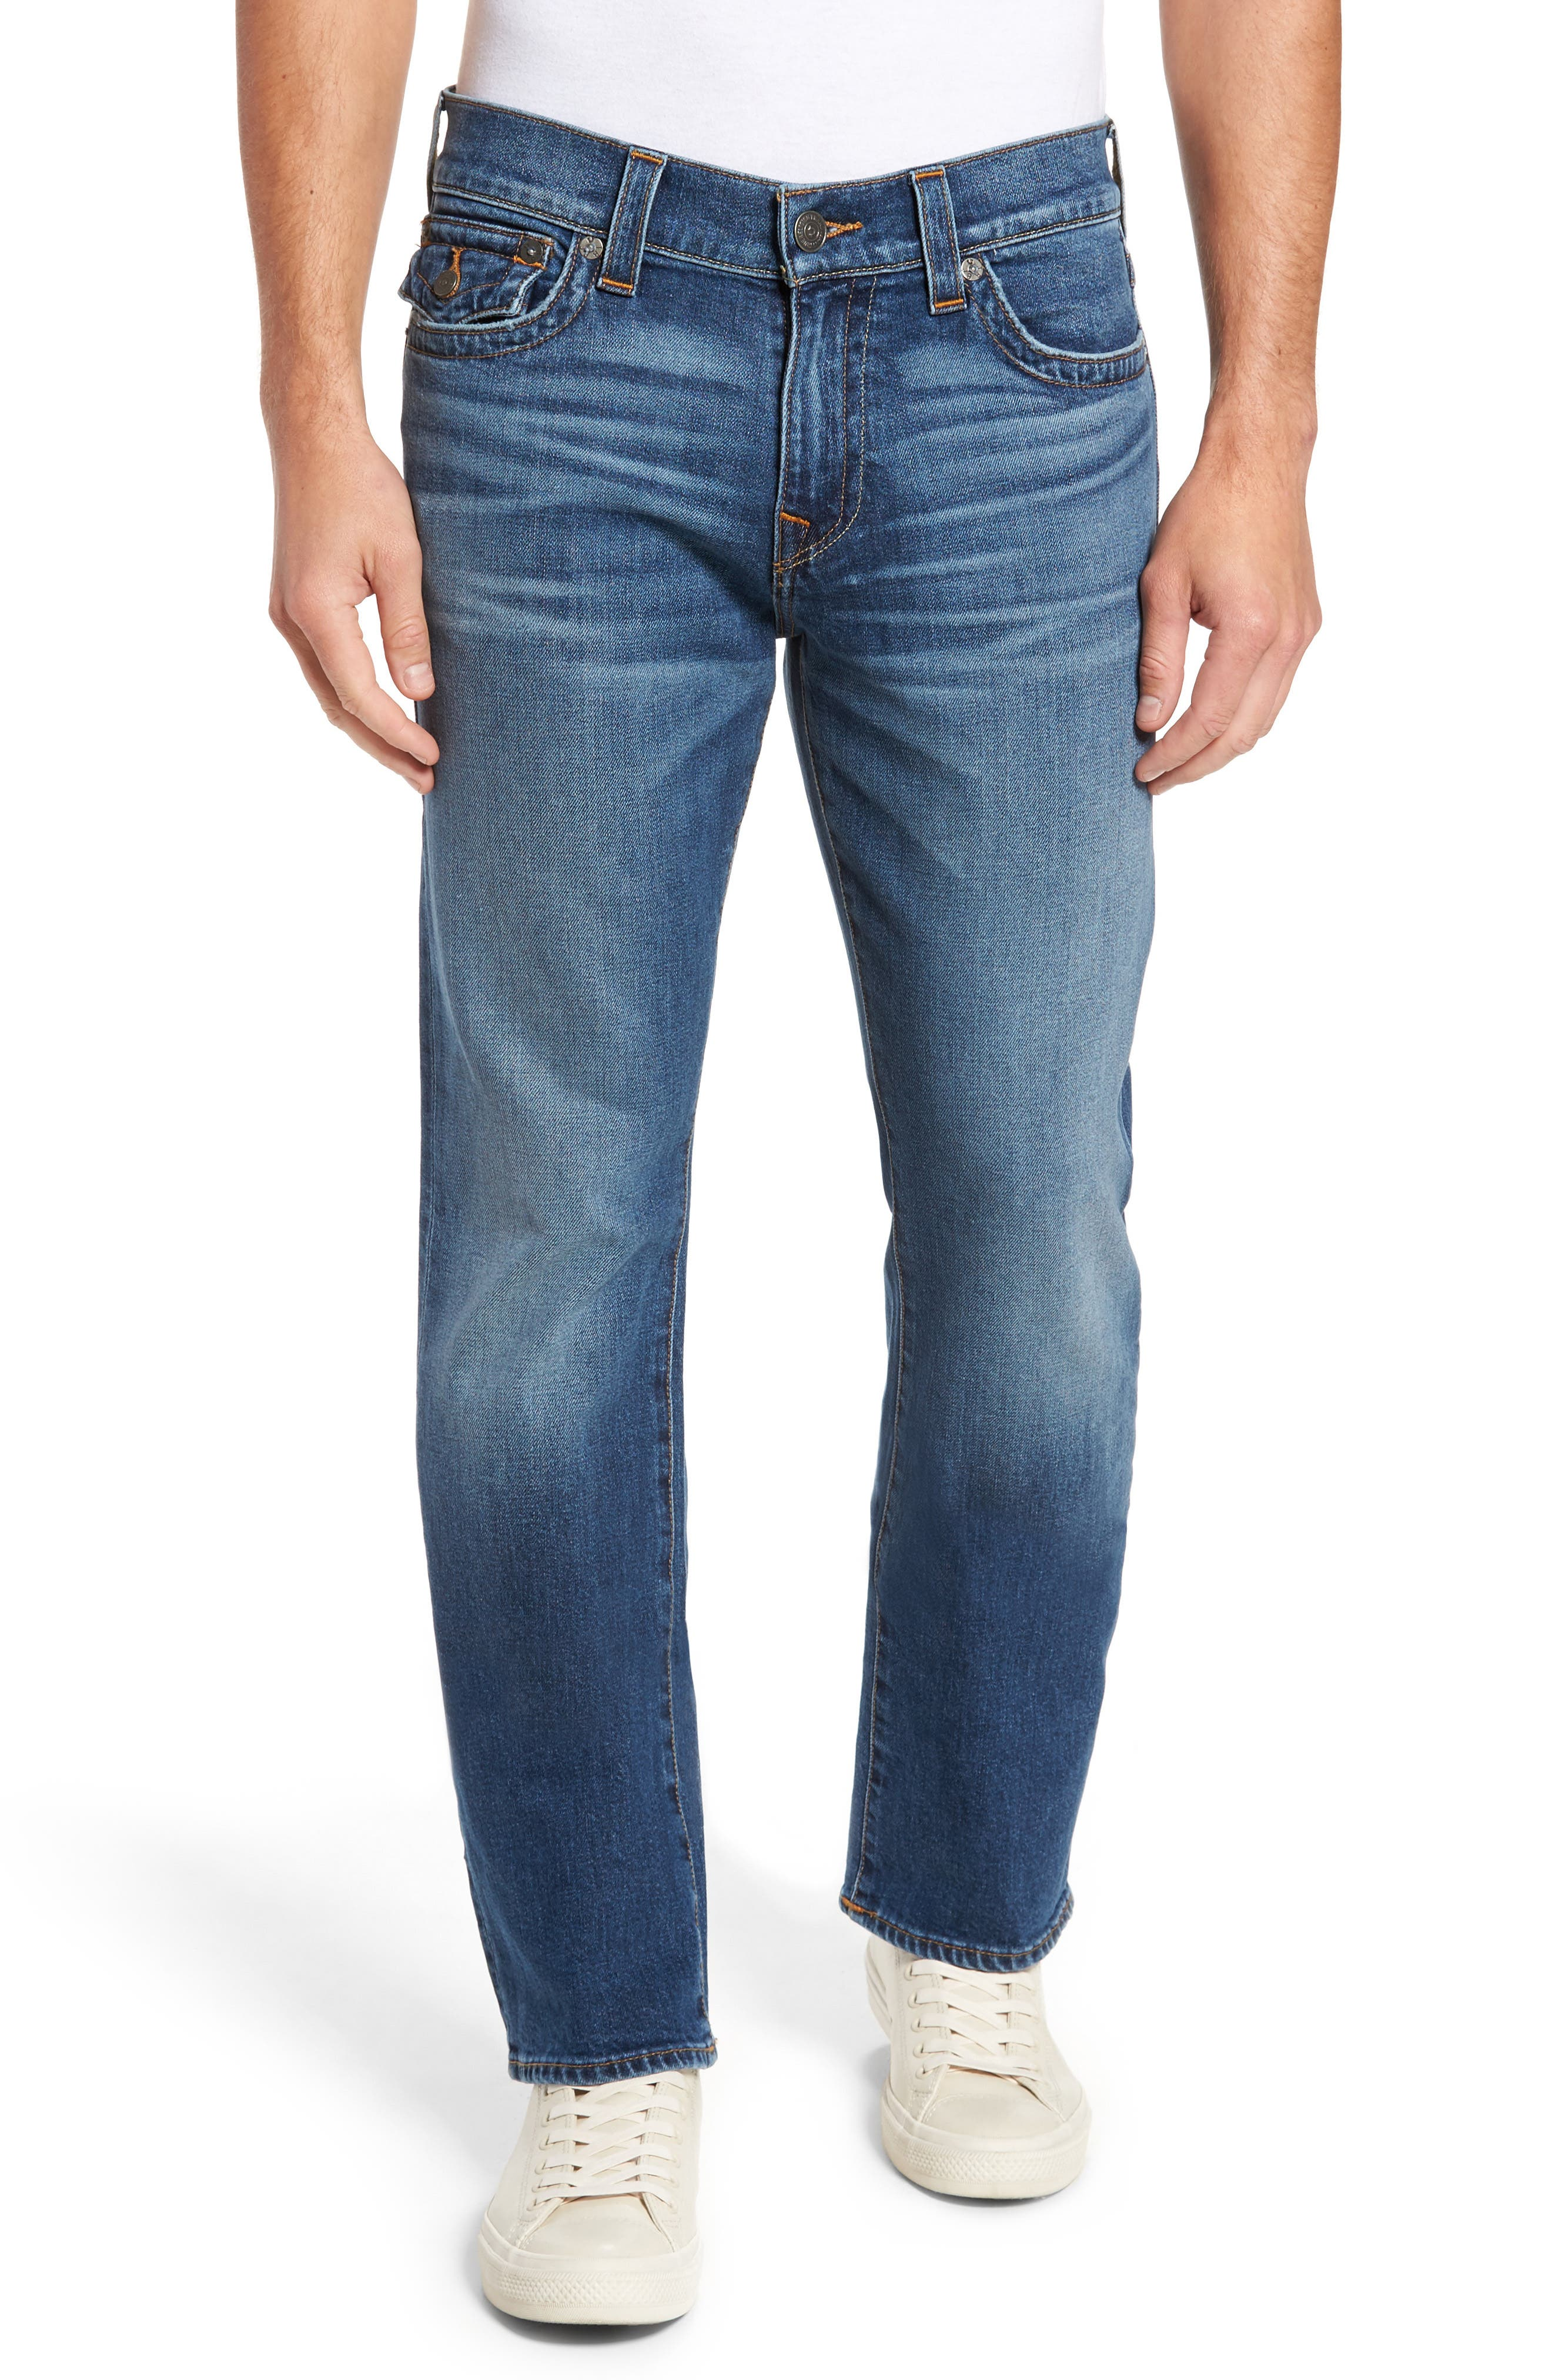 Ricky Relaxed Fit Jeans,                         Main,                         color, Indigo Traveler